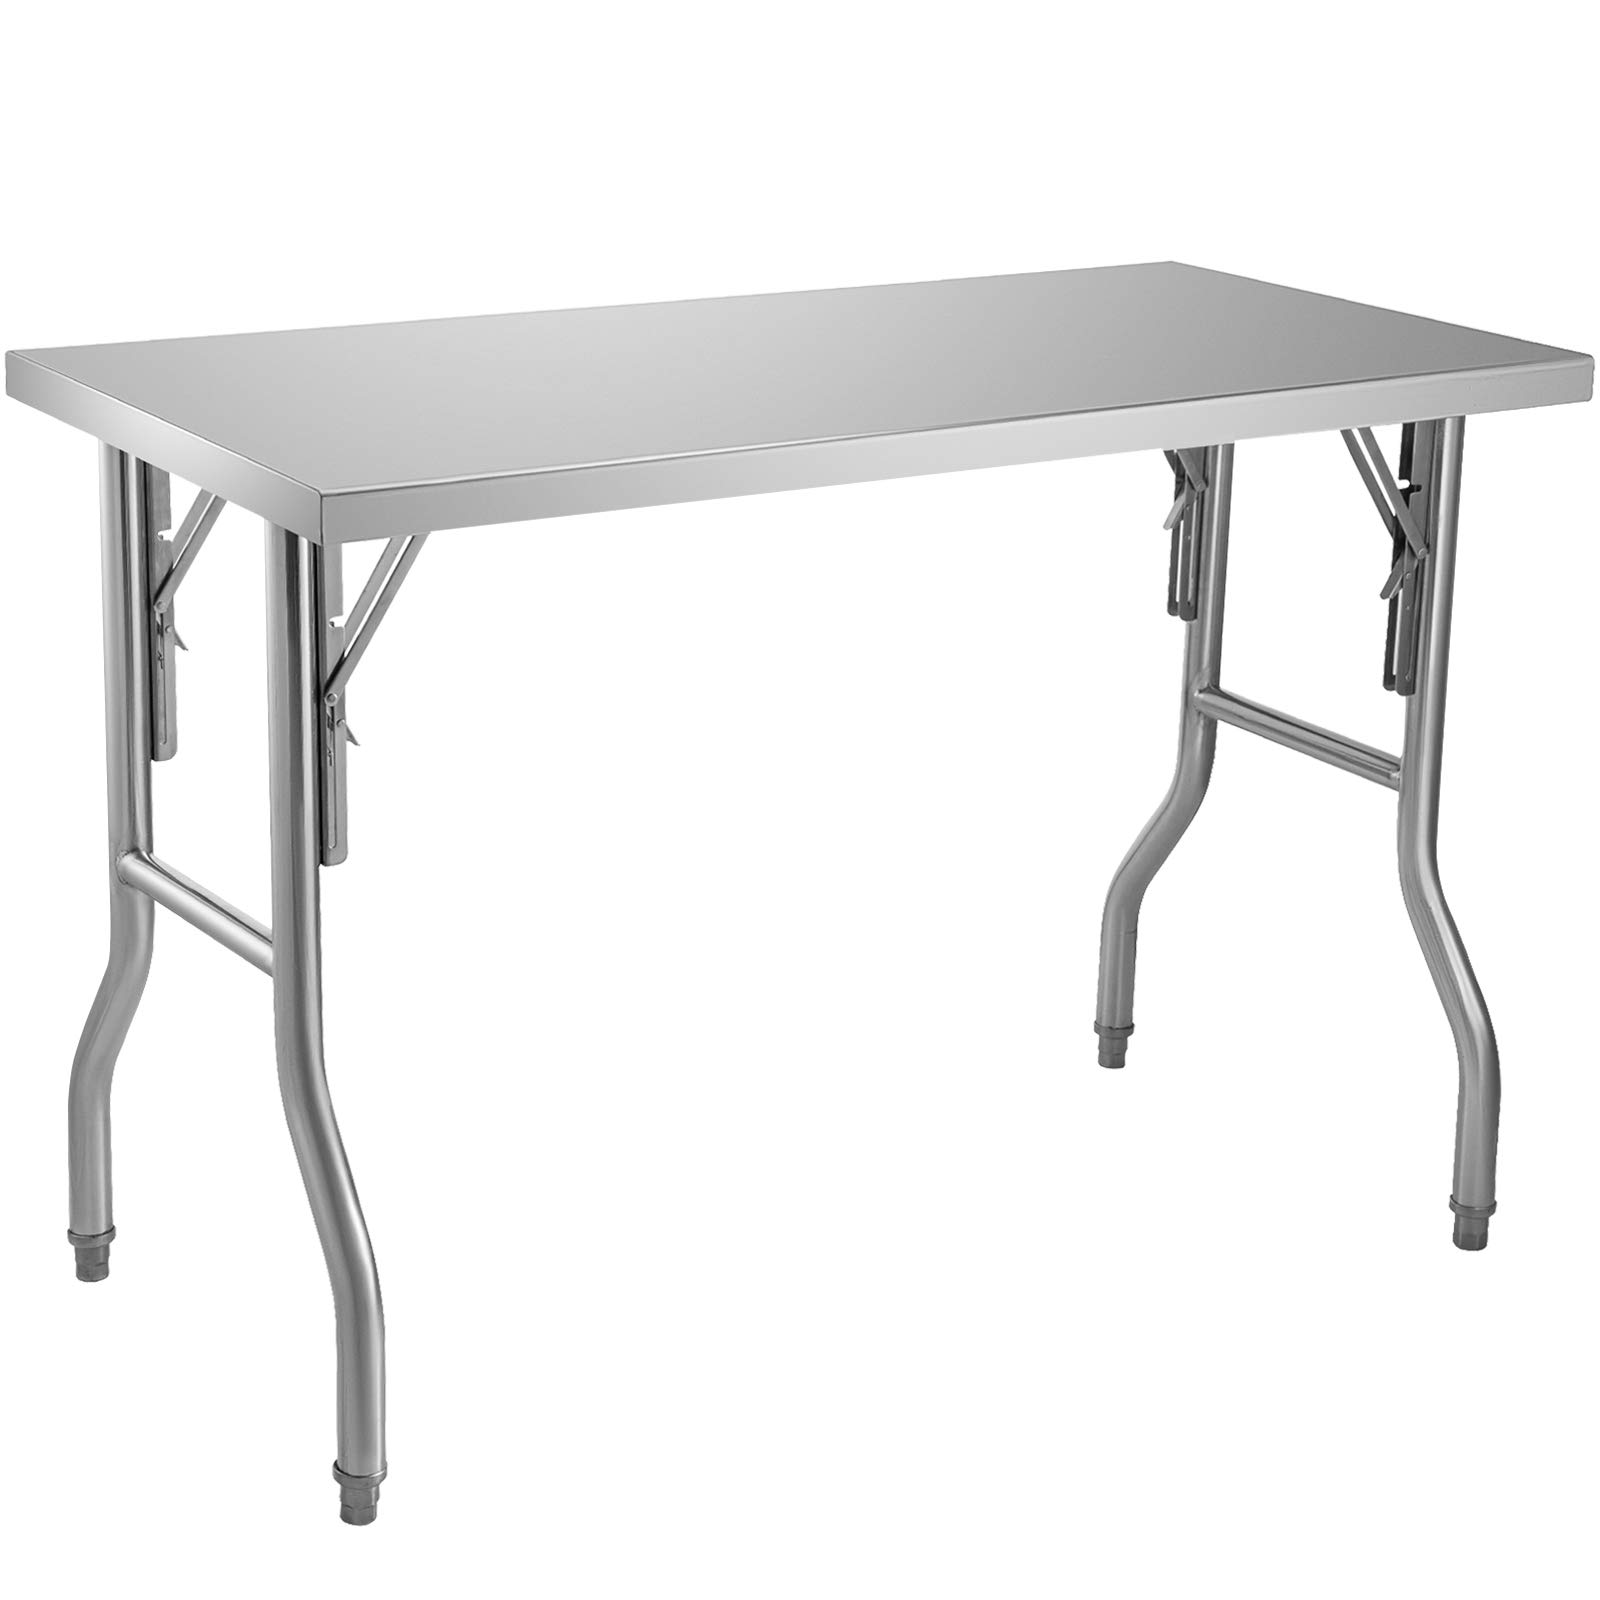 VEVOR Commercial Worktable Workstation 48 x 24 Inch Folding Commercial Prep Table, Heavy-duty Stainless Steel Folding Table with 661 lbs Load, Kitchen Work Table, Silver Stainless Steel Kitchen Island